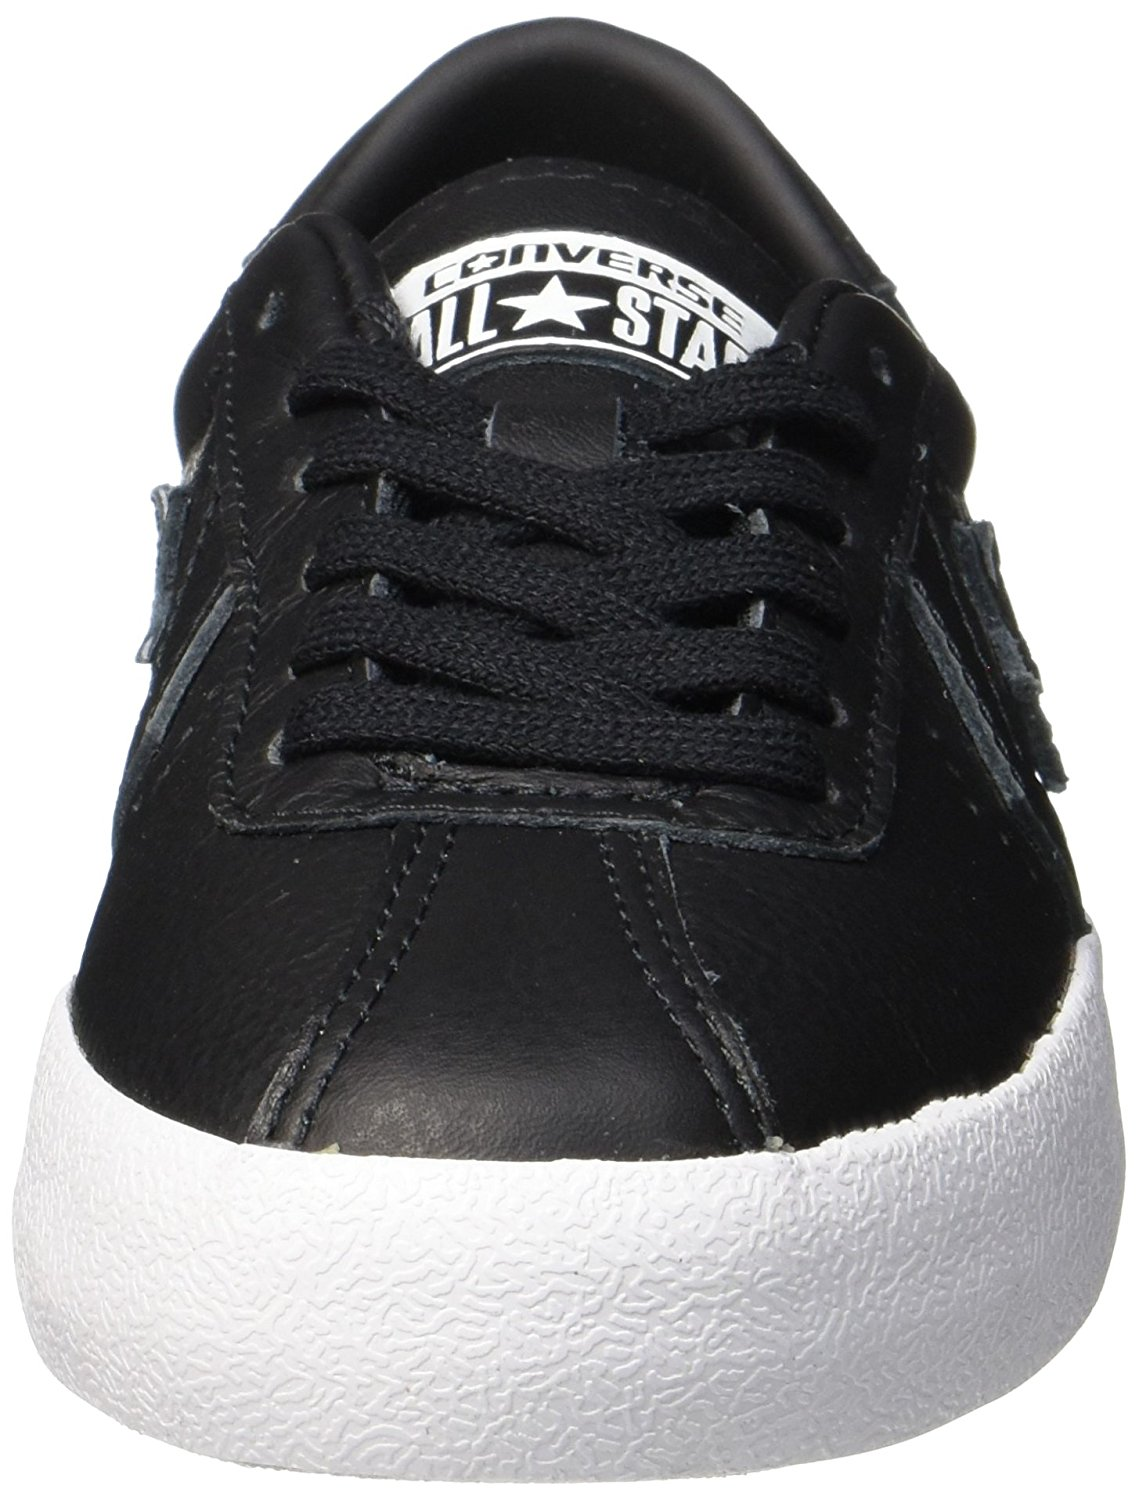 8e6fb500dd95 Converse Mens Breakpoint Ox Low Top Lace Up Fashion, Black White, Size 7.0  Uwdy